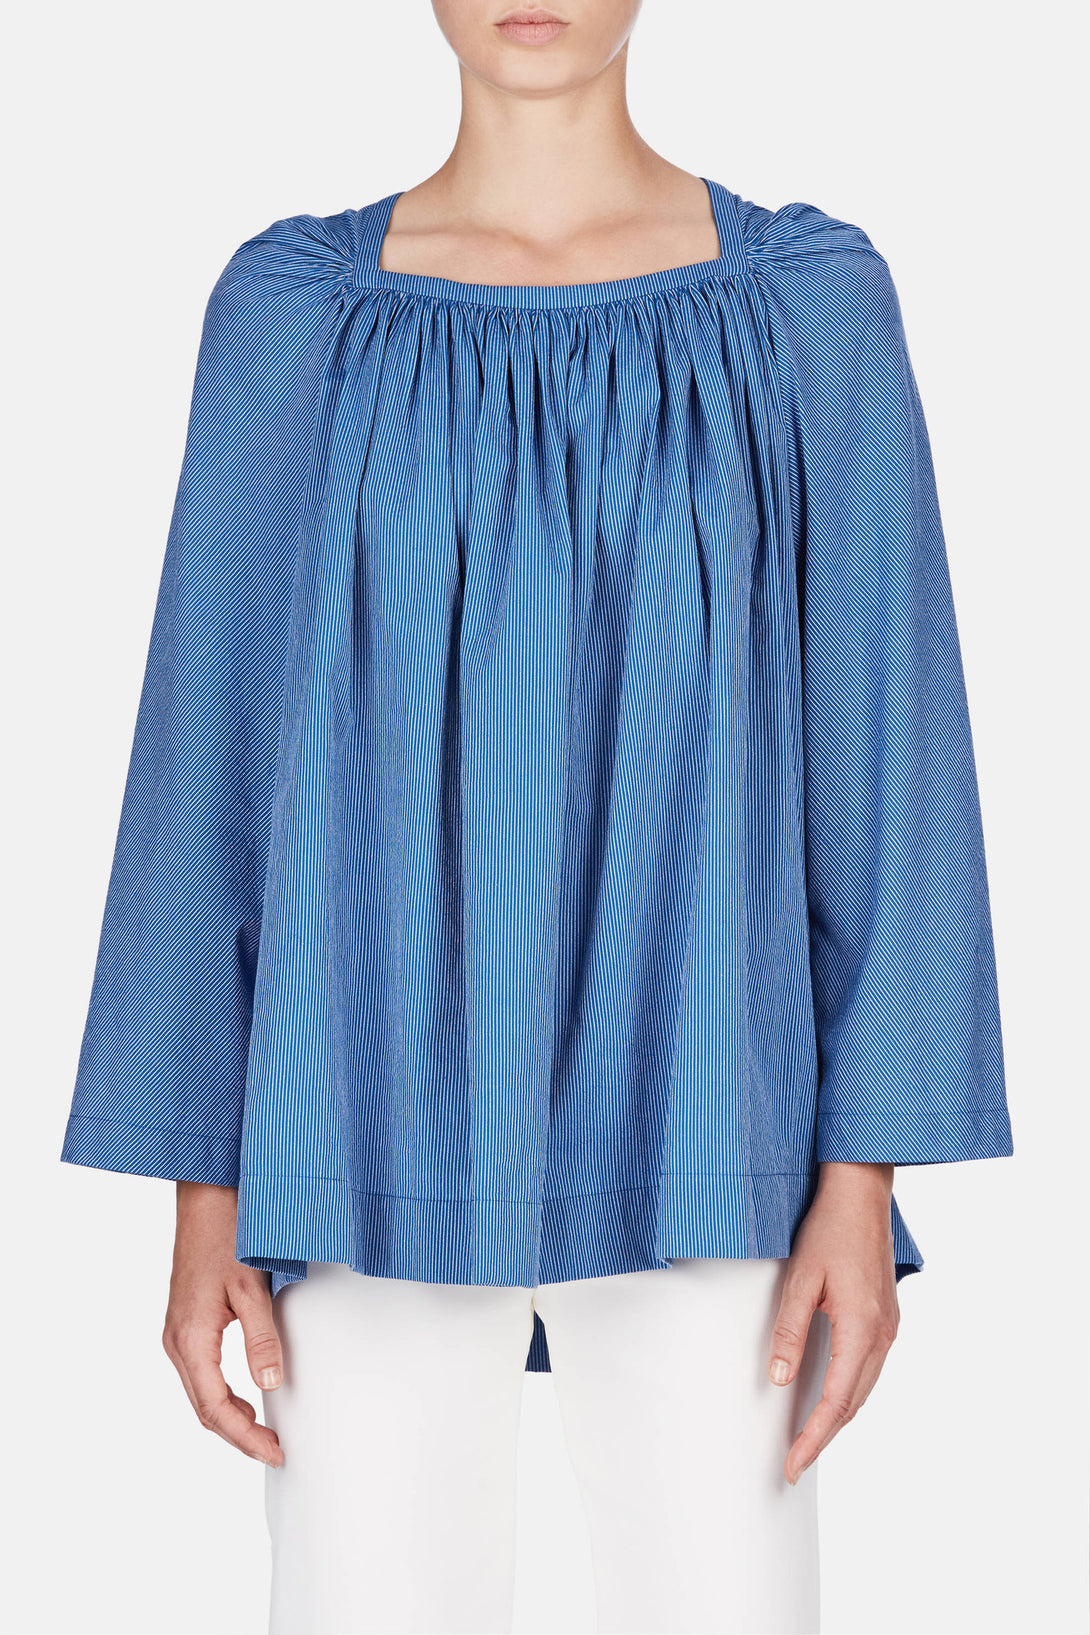 Square Collar Top - Bright Blue